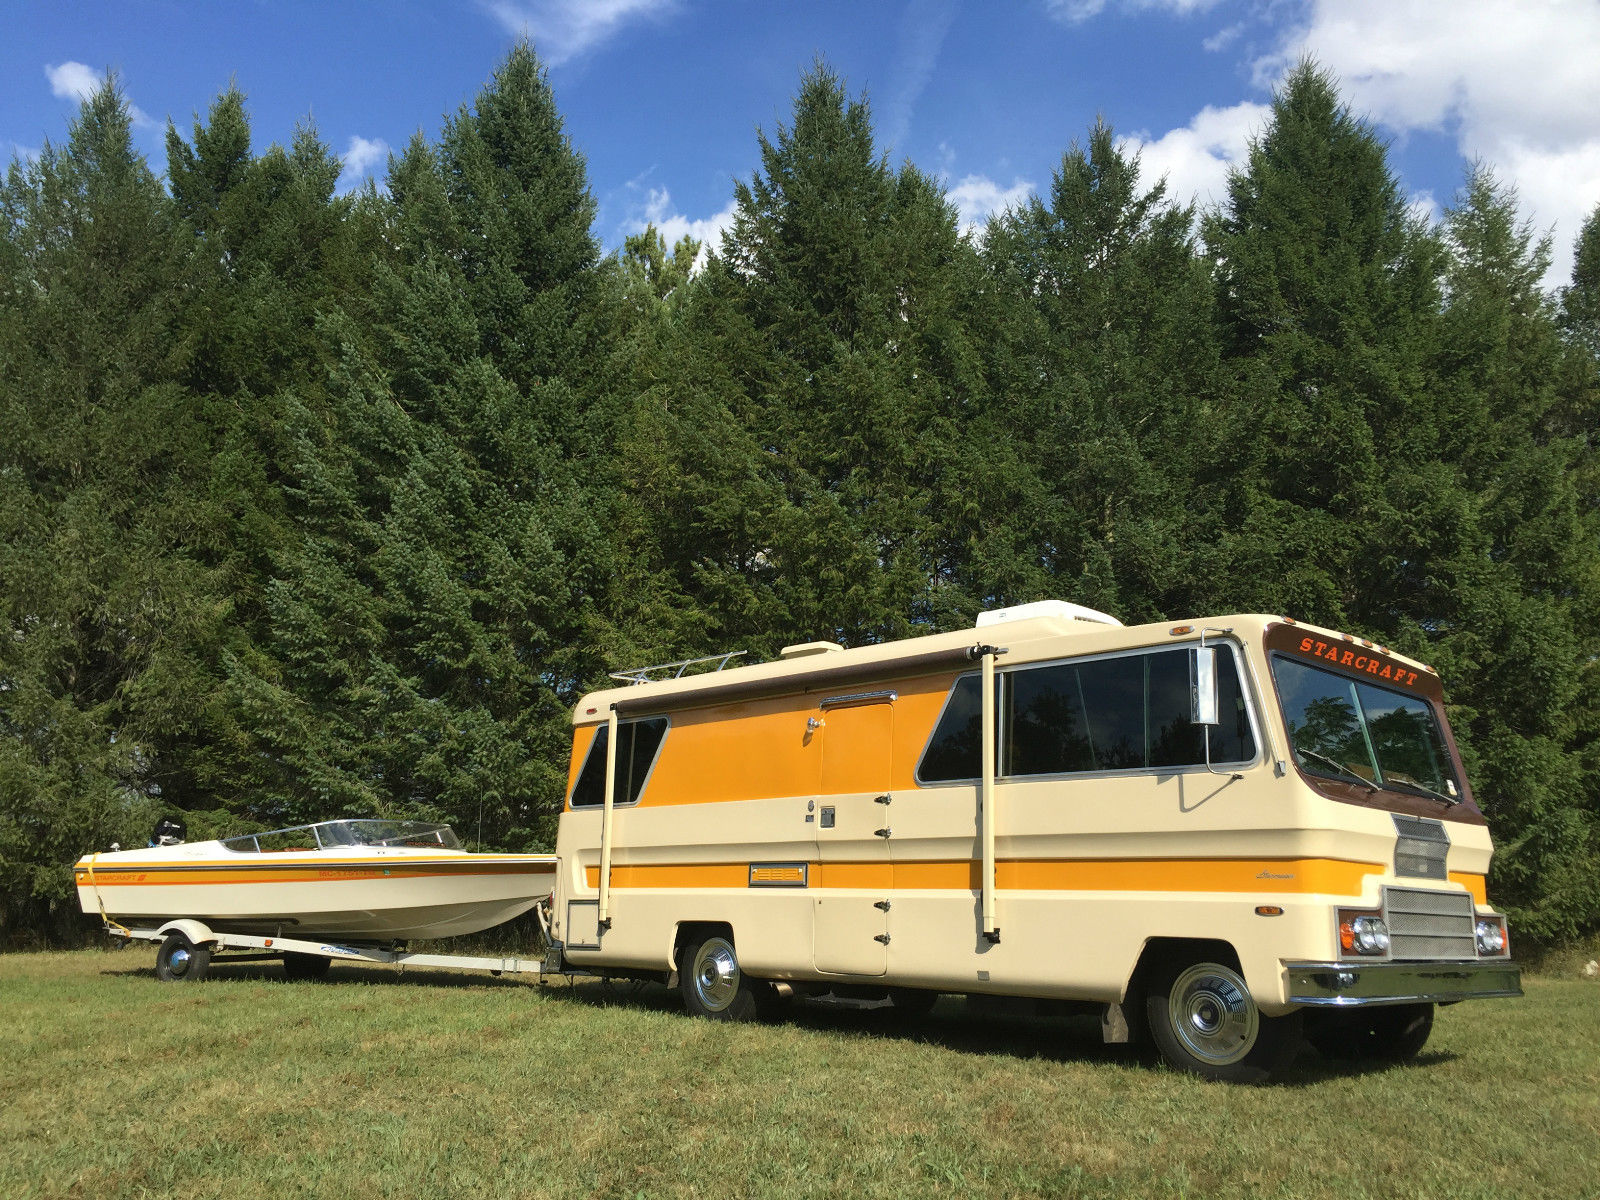 RV Insanity! This 1974 Starcraft Starcruiser AND Starcraft Stinger Boat Combo Is Perfection